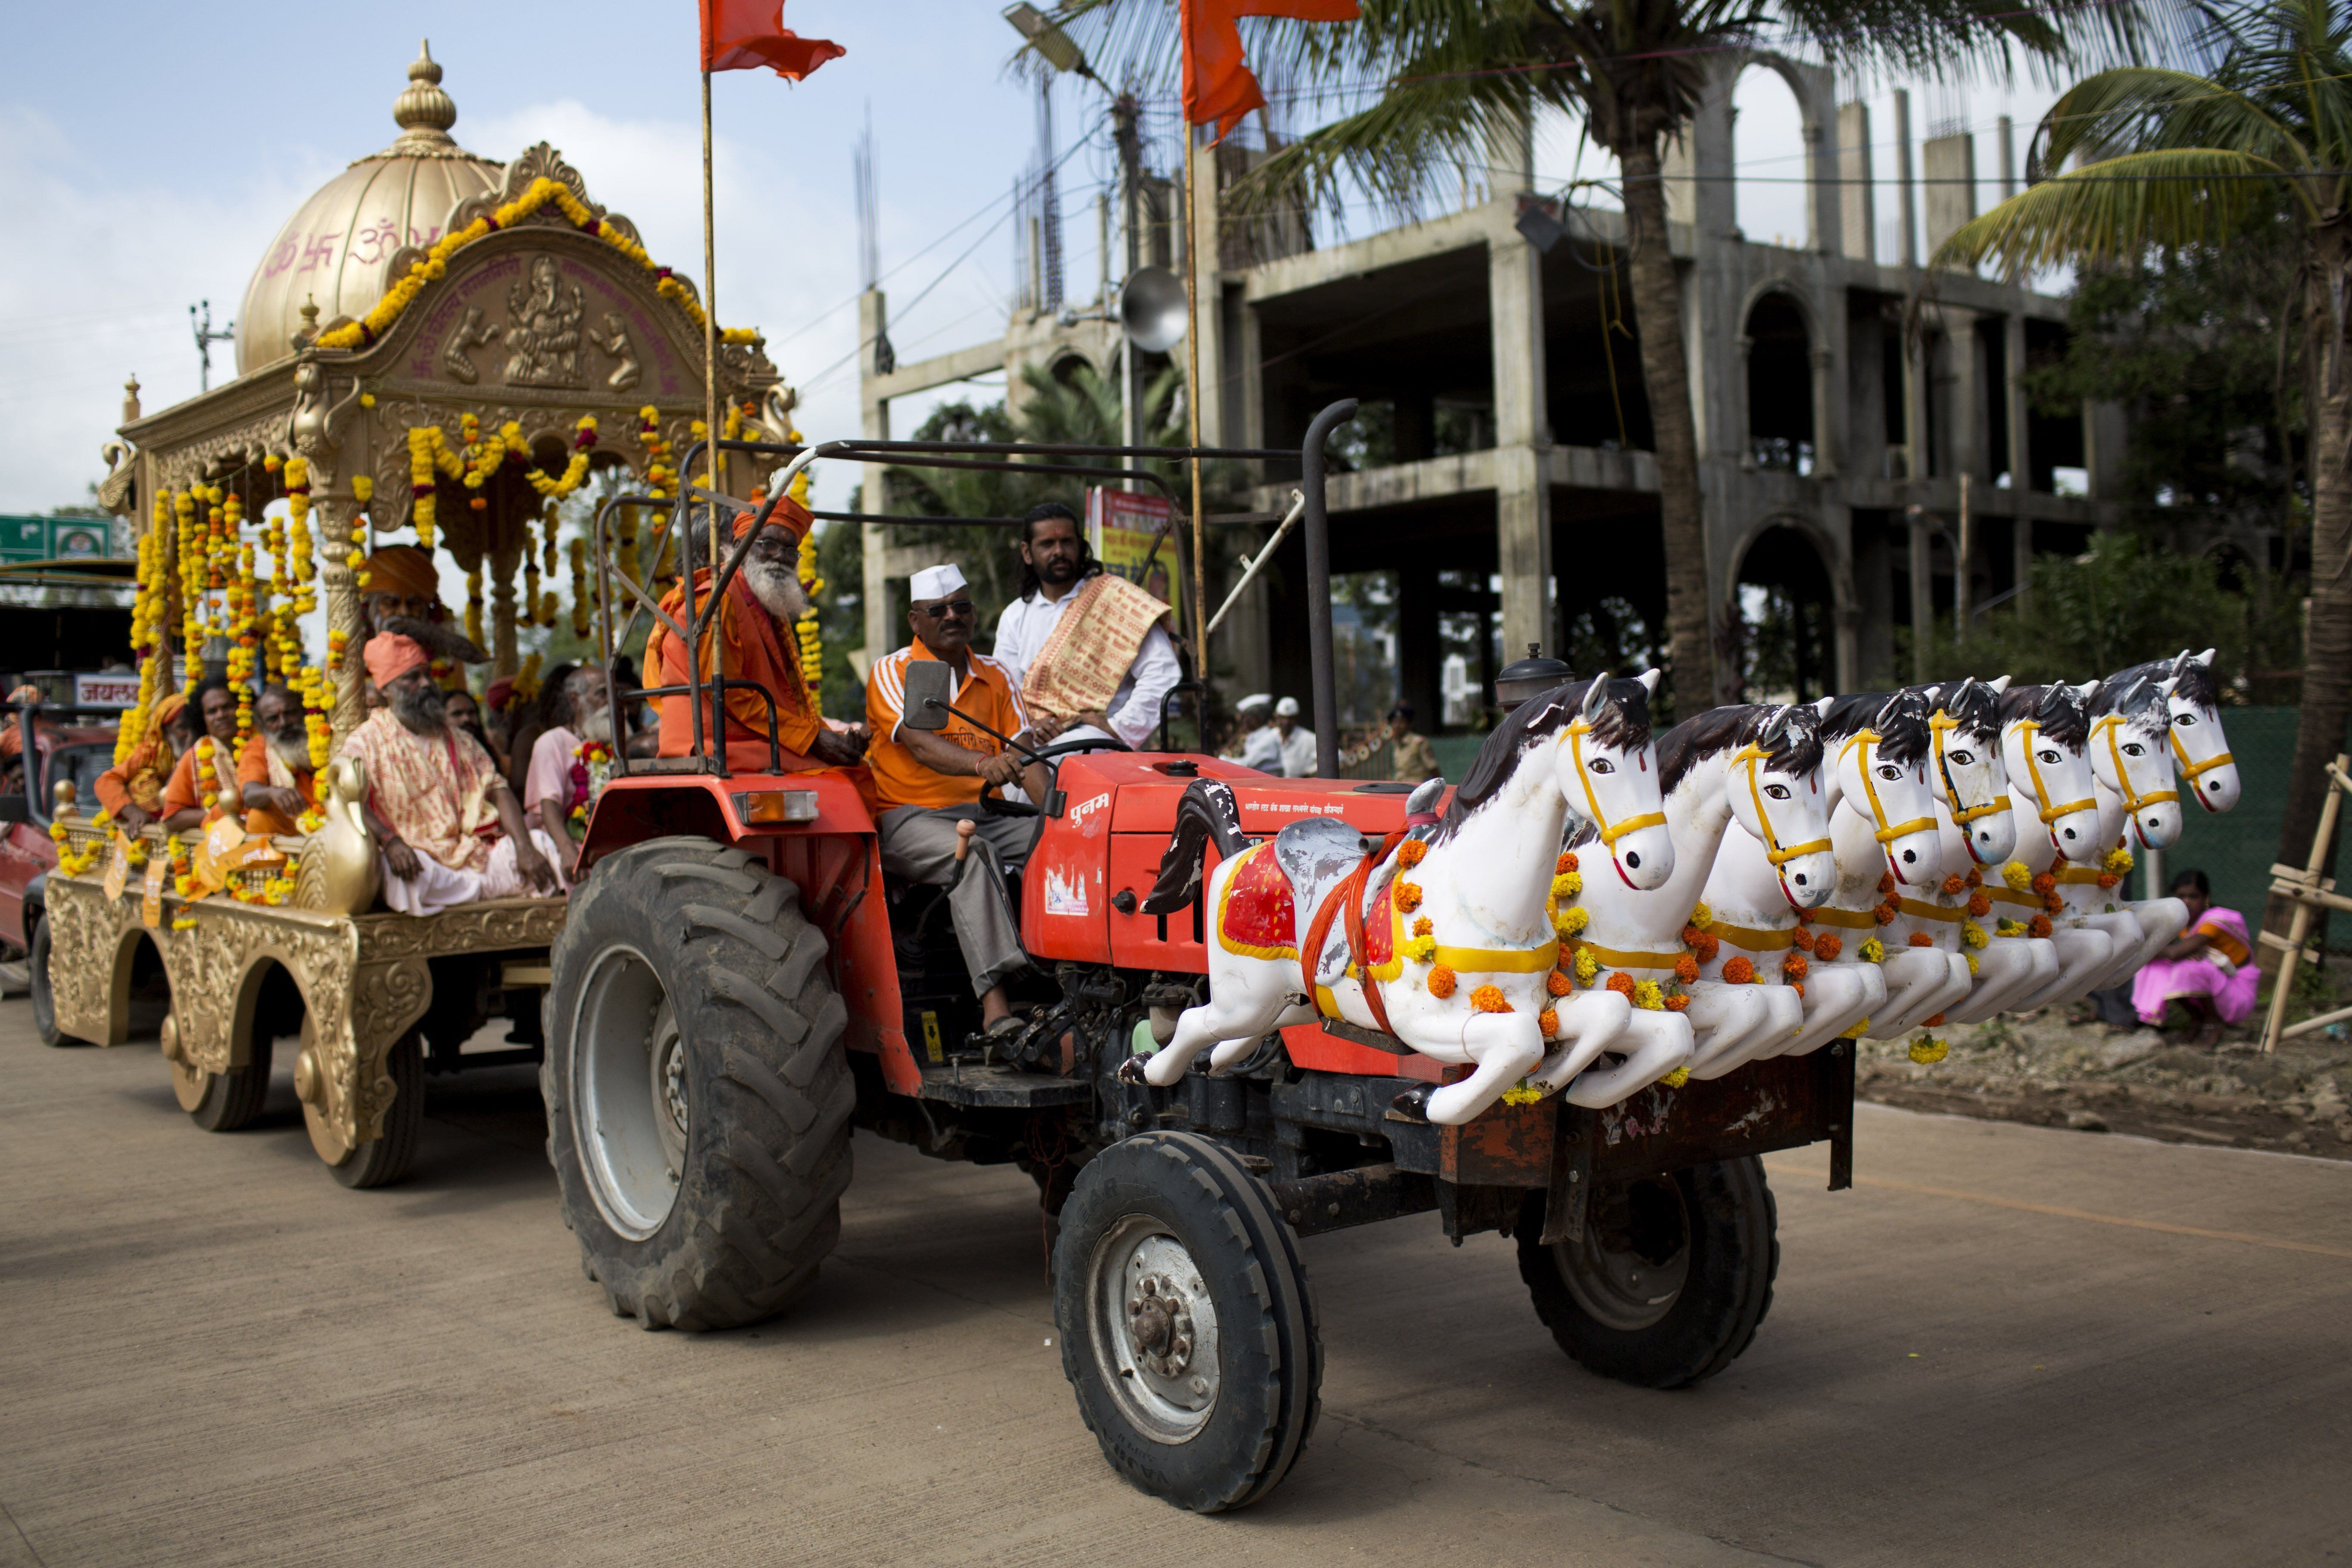 A decorated tractor pushes a carriage carrying Hindu religious men during a procession during Kumbh Mela, or Pitcher Festival, at Trimbakeshwar, India, on Aug. 27, 2015.